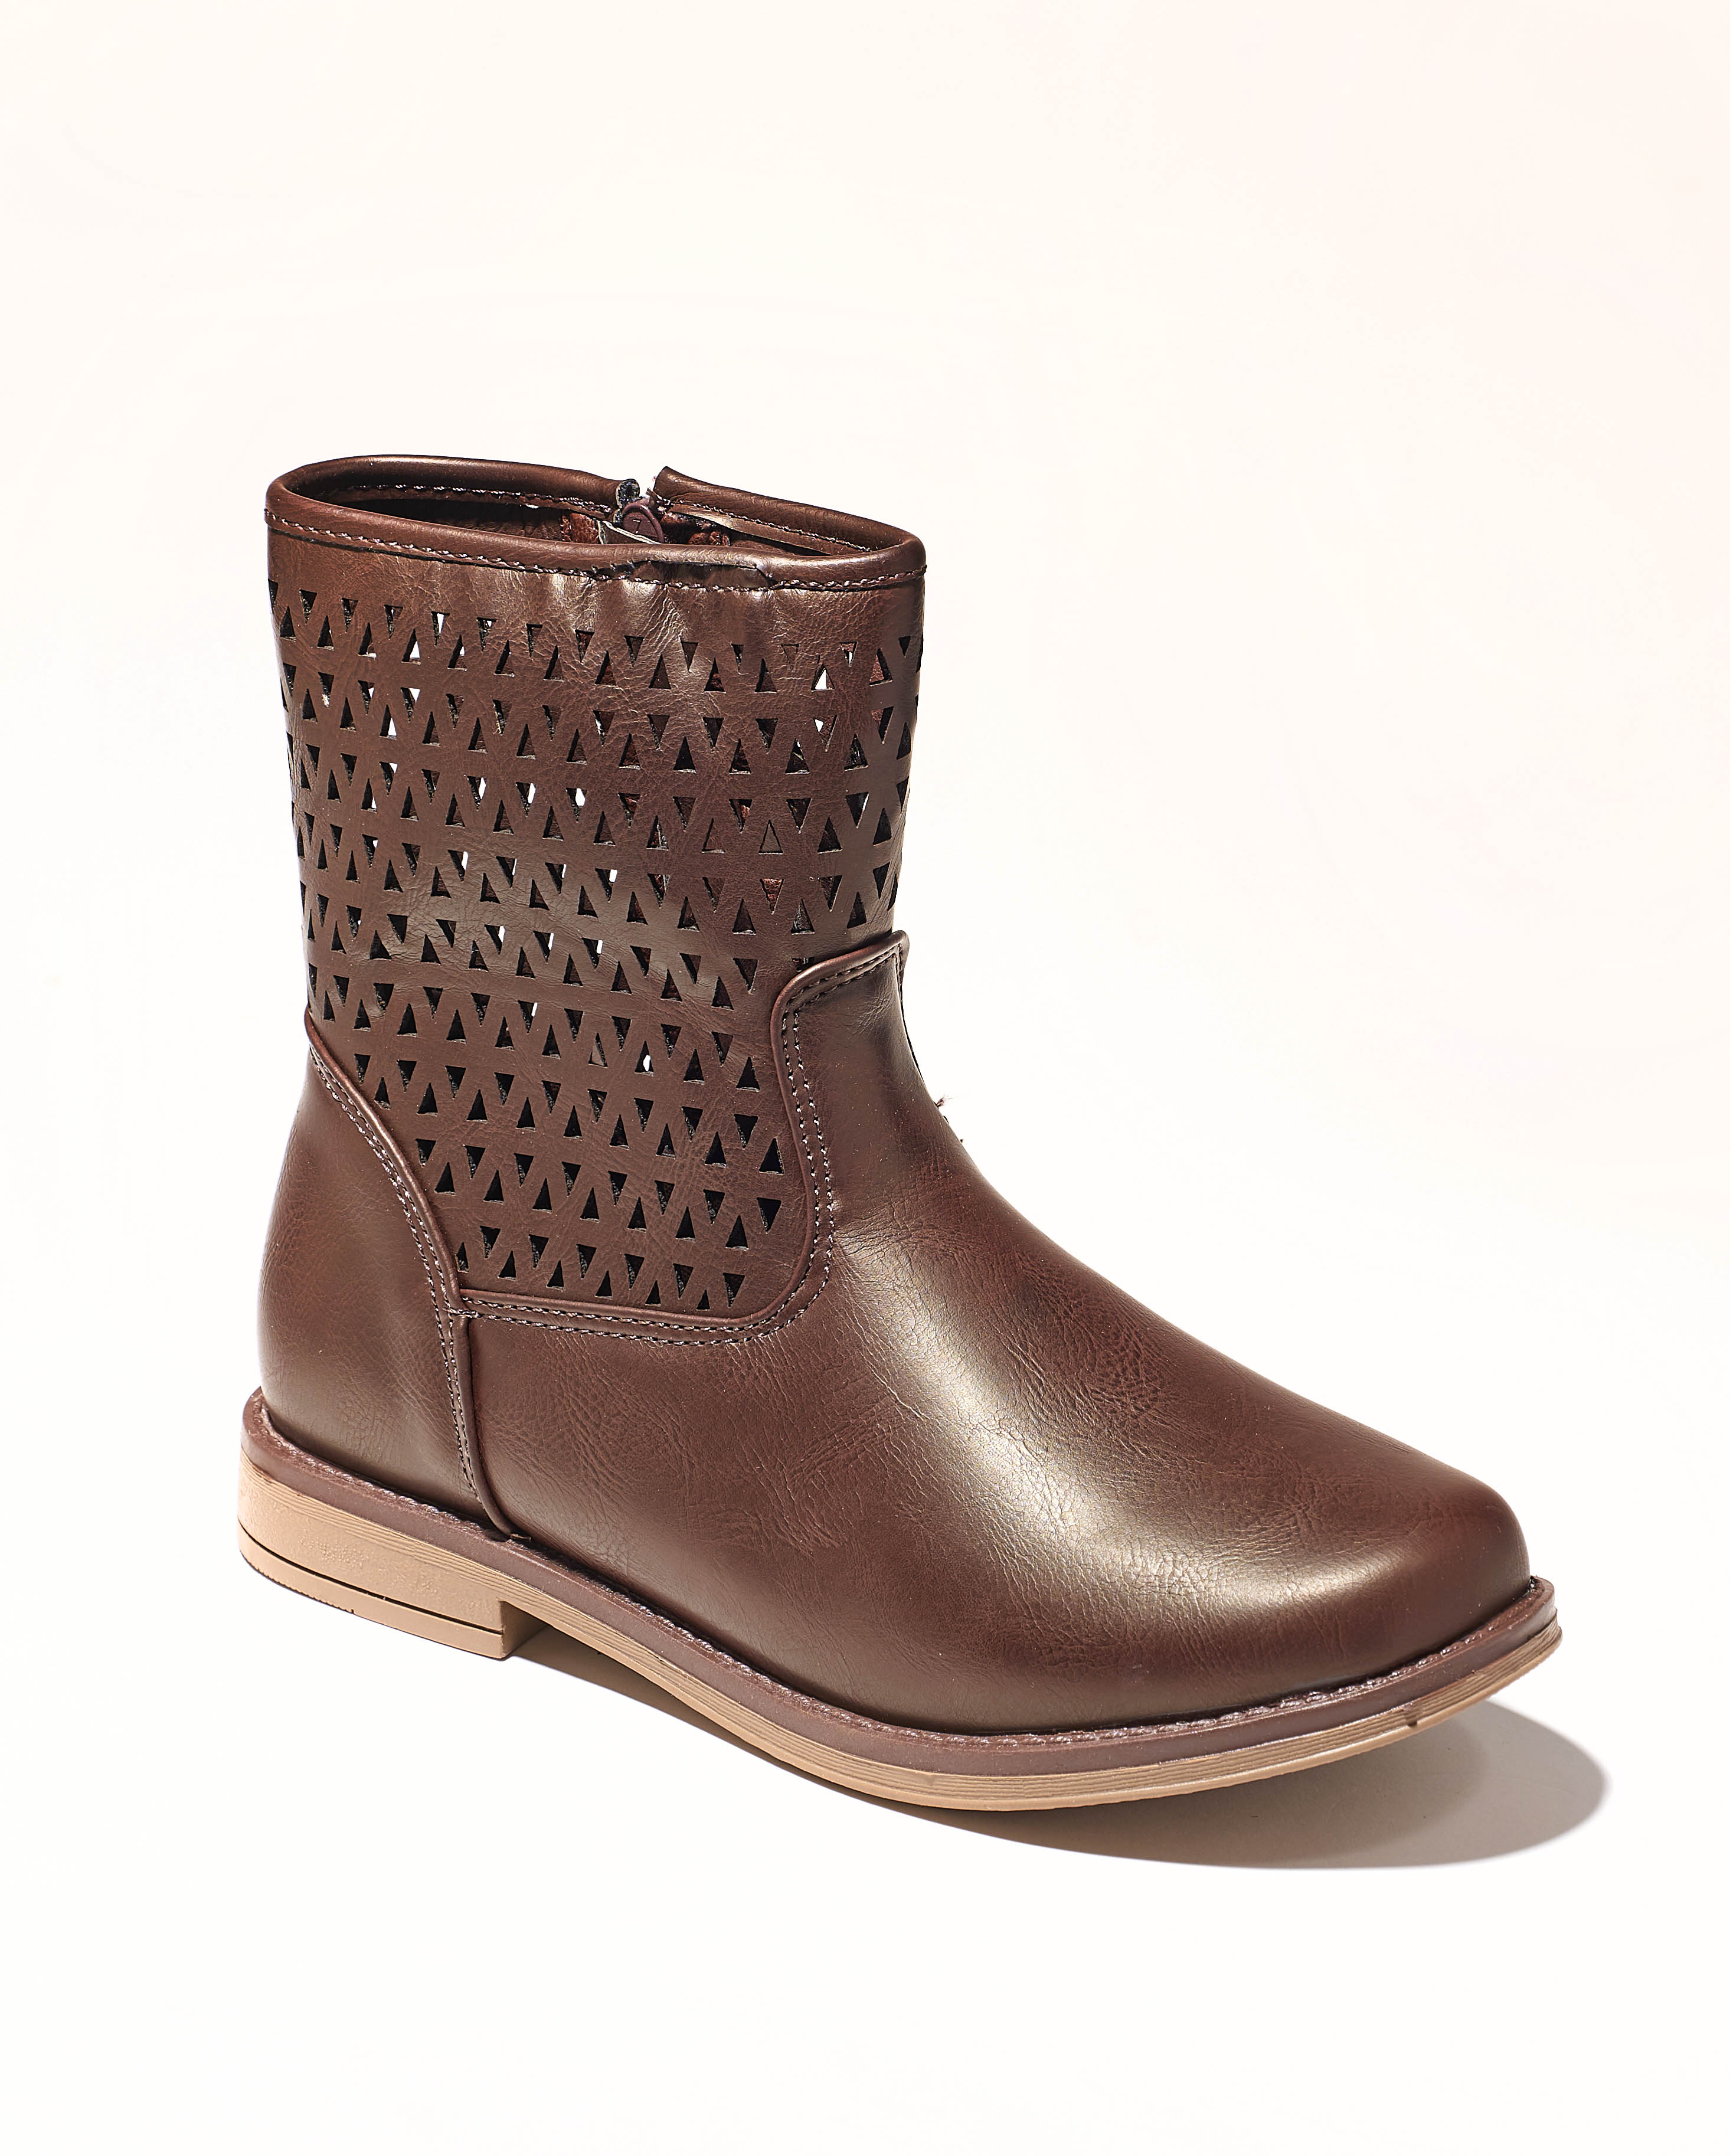 Boots Fille - Boots Marron Fonce Jina - Yb1813401